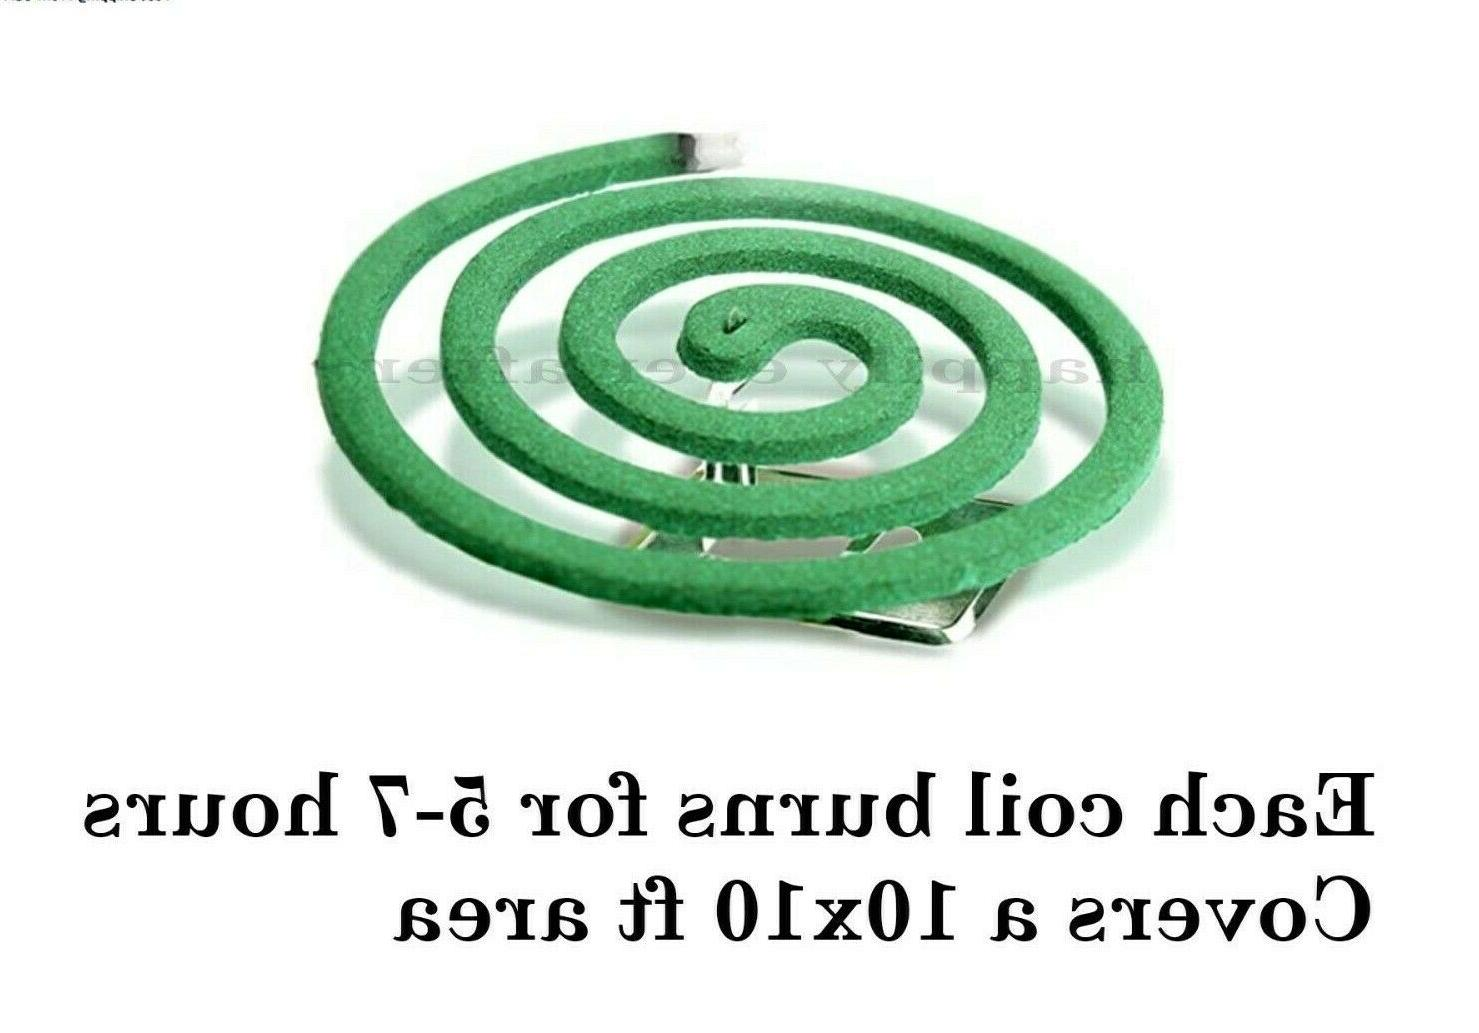 PIC Mosquito Repellent Coils- 2 Box! Patios, Outdoor use